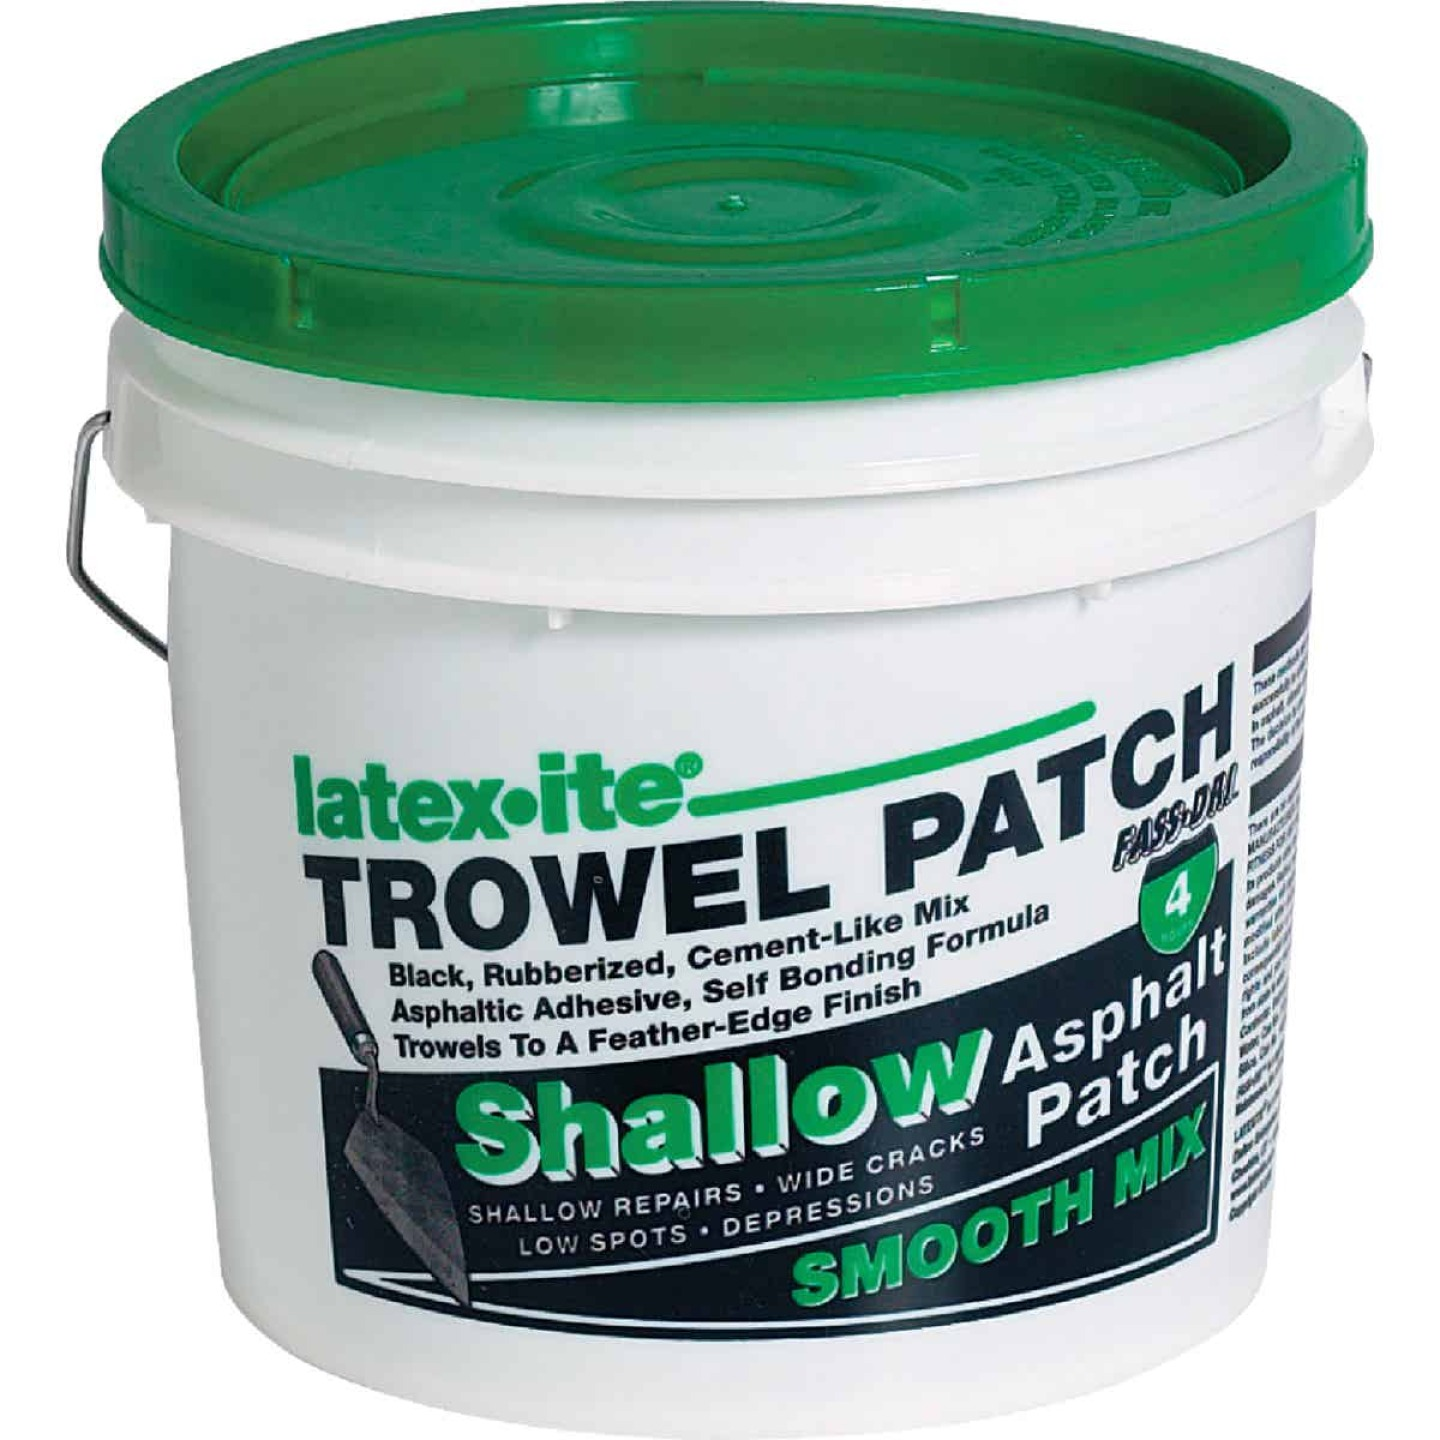 Latex-ite Trowel Patch 2 Gal. Trowel Asphalt Patch Image 1